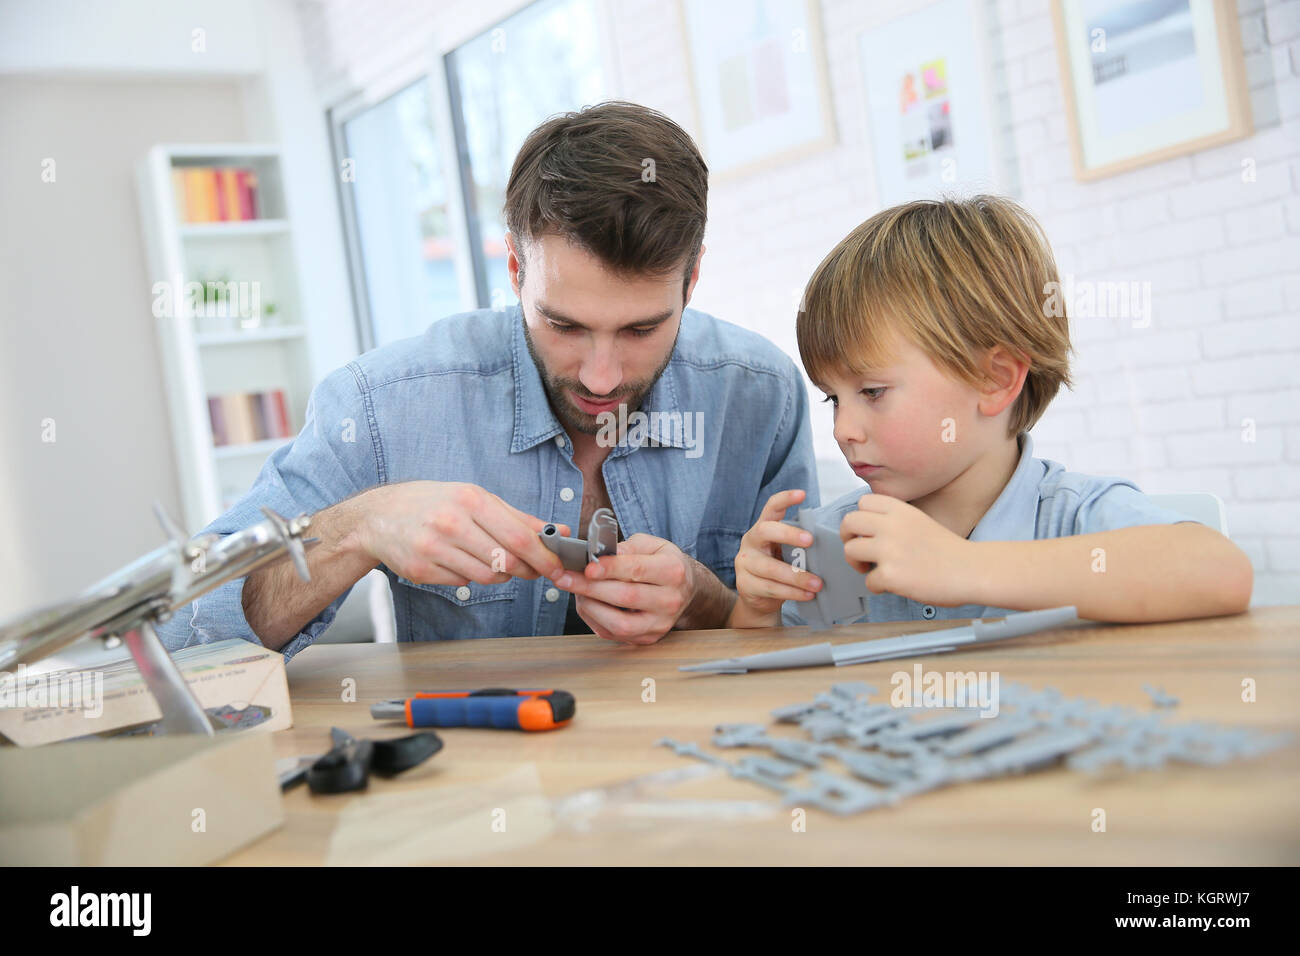 Father and son assembling airplane mock-up - Stock Image